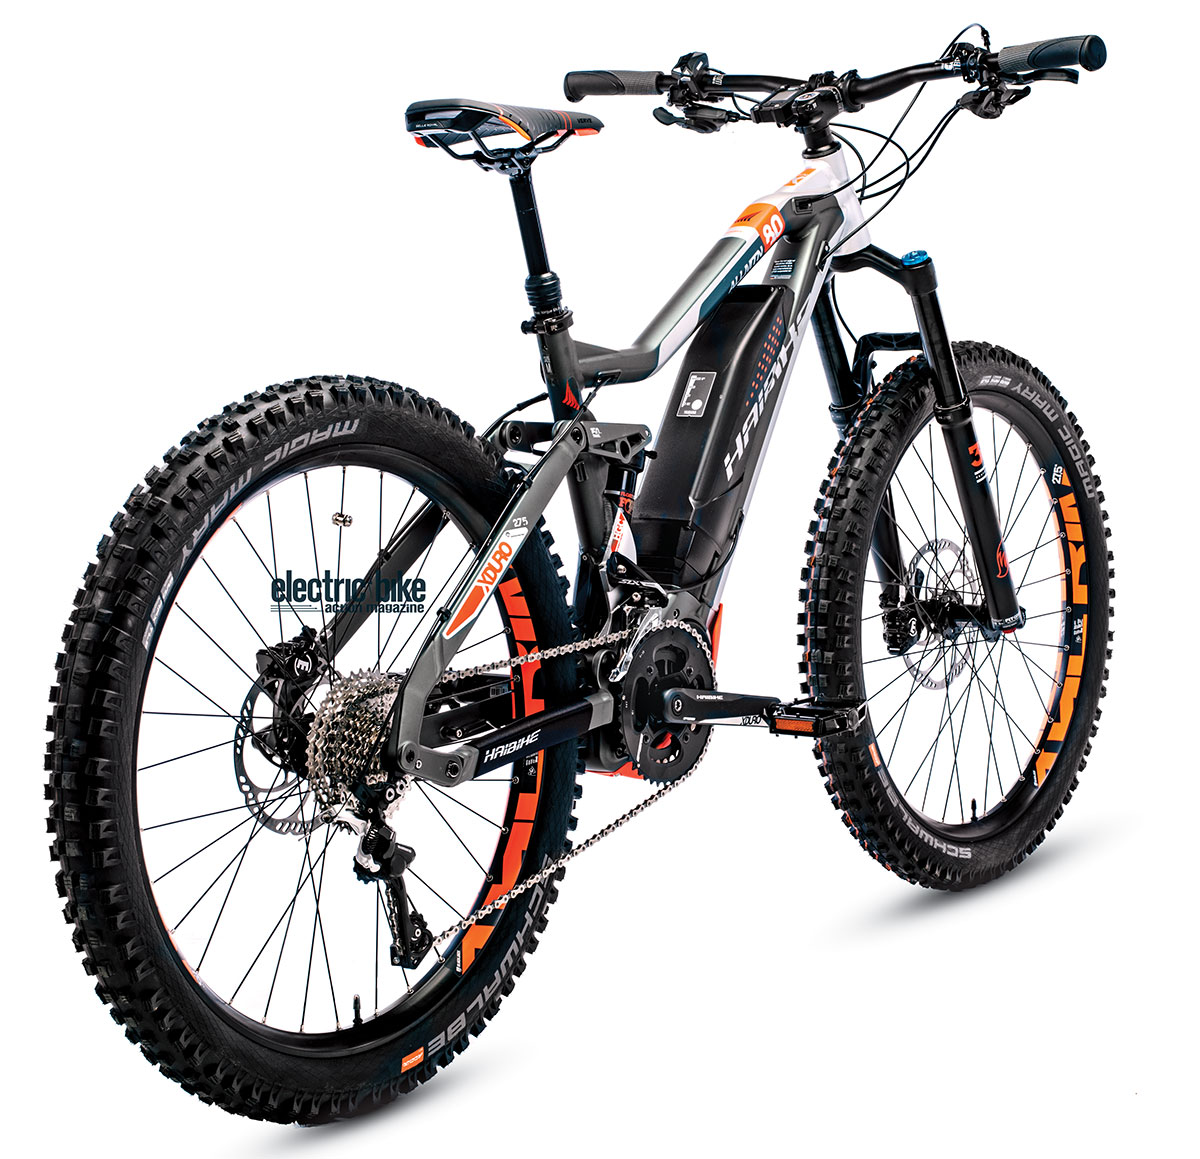 355ce335be7 The Haibike AllMtn has everything you d expect in a good all-mountain bike  and some you might not. It features the Yamaha PW-X motor